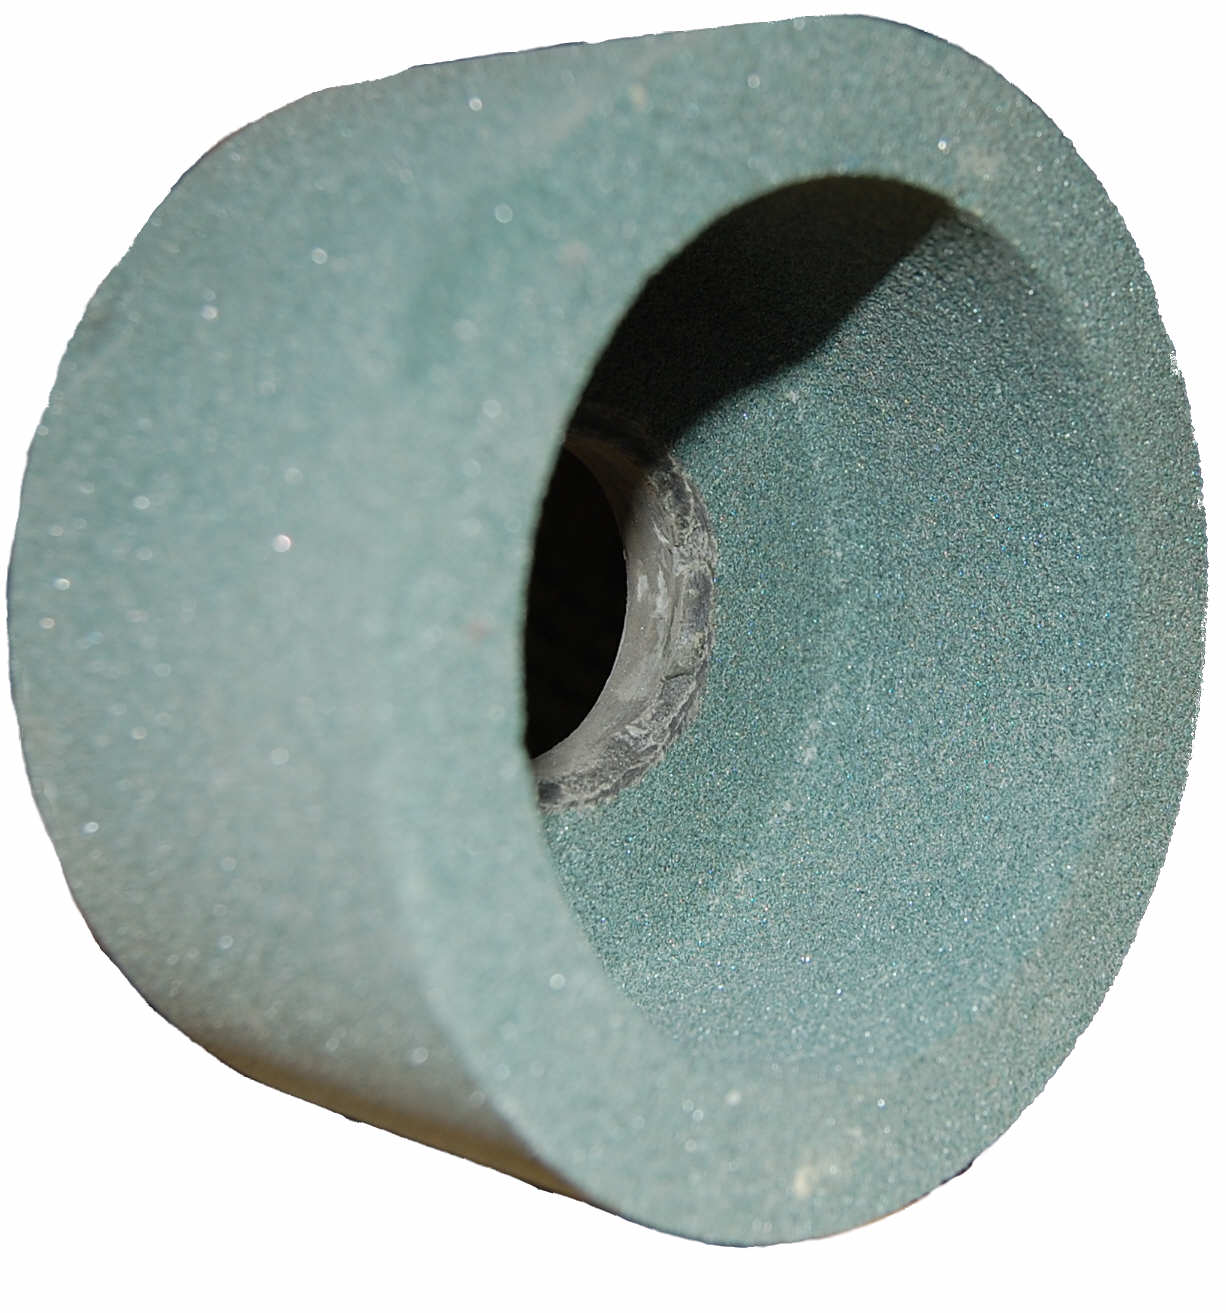 100 Straight Cup Grinding Wheels Abtec4abrasives